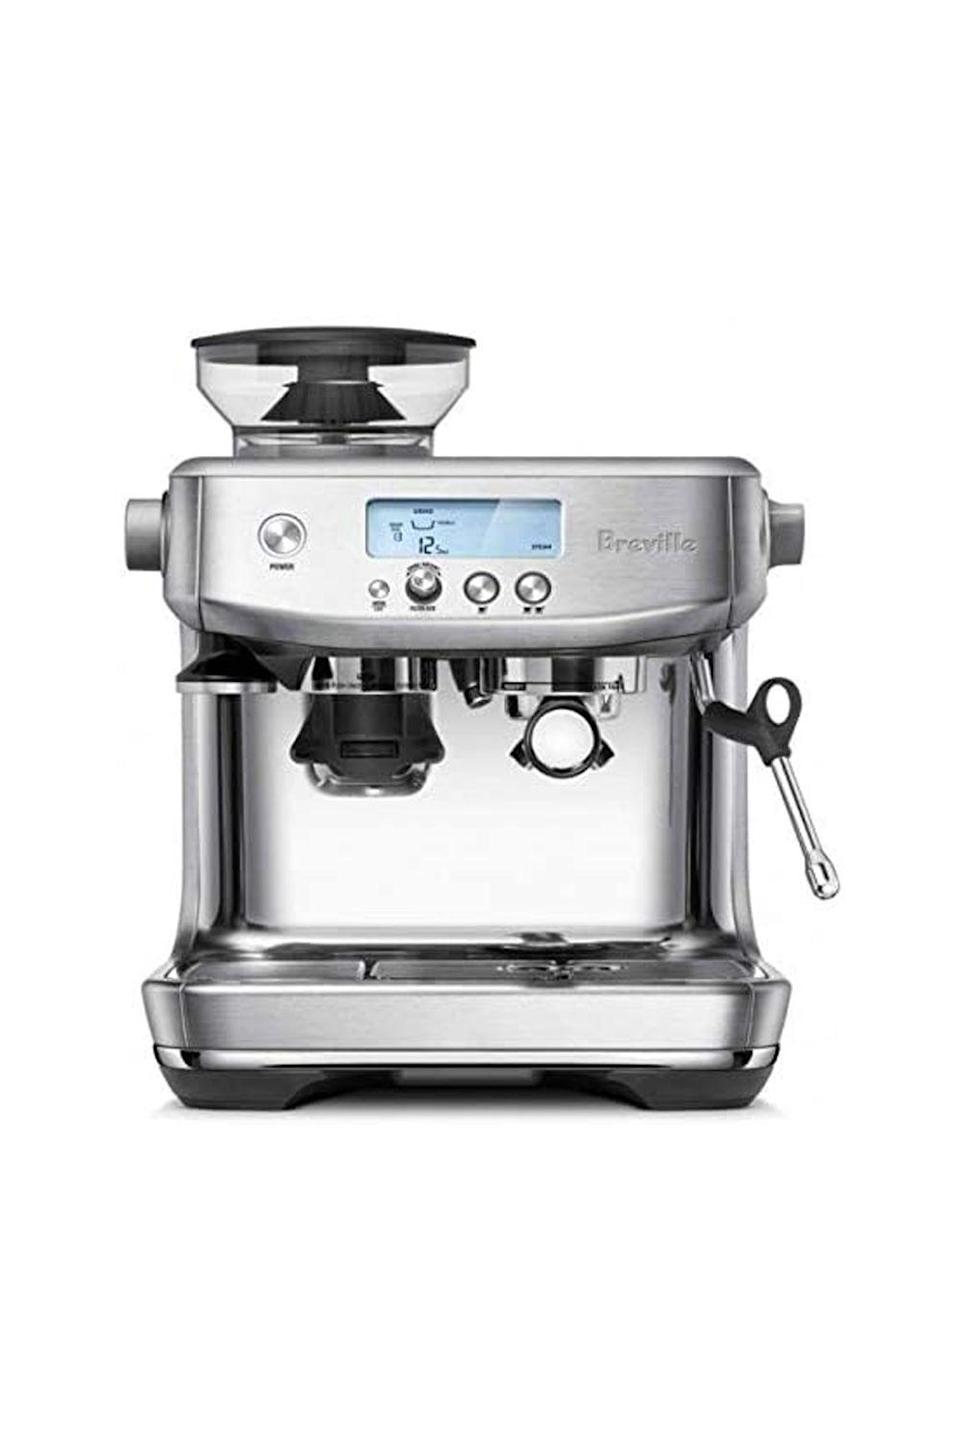 """<p><strong>Breville</strong></p><p>amazon.com</p><p><strong>$794.00</strong></p><p><a href=""""https://www.amazon.com/dp/B08133HX34?tag=syn-yahoo-20&ascsubtag=%5Bartid%7C10050.g.34621820%5Bsrc%7Cyahoo-us"""" rel=""""nofollow noopener"""" target=""""_blank"""" data-ylk=""""slk:Shop Now"""" class=""""link rapid-noclick-resp"""">Shop Now</a></p><p>This espresso machine comes with some serious bells and whistles—think temperature-controlled espresso extraction, an intuitive LED display, and a steam wand that makes creating custom latte art a cinch. Their kitchen will transform into a gourmet coffeehouse overnight.</p>"""